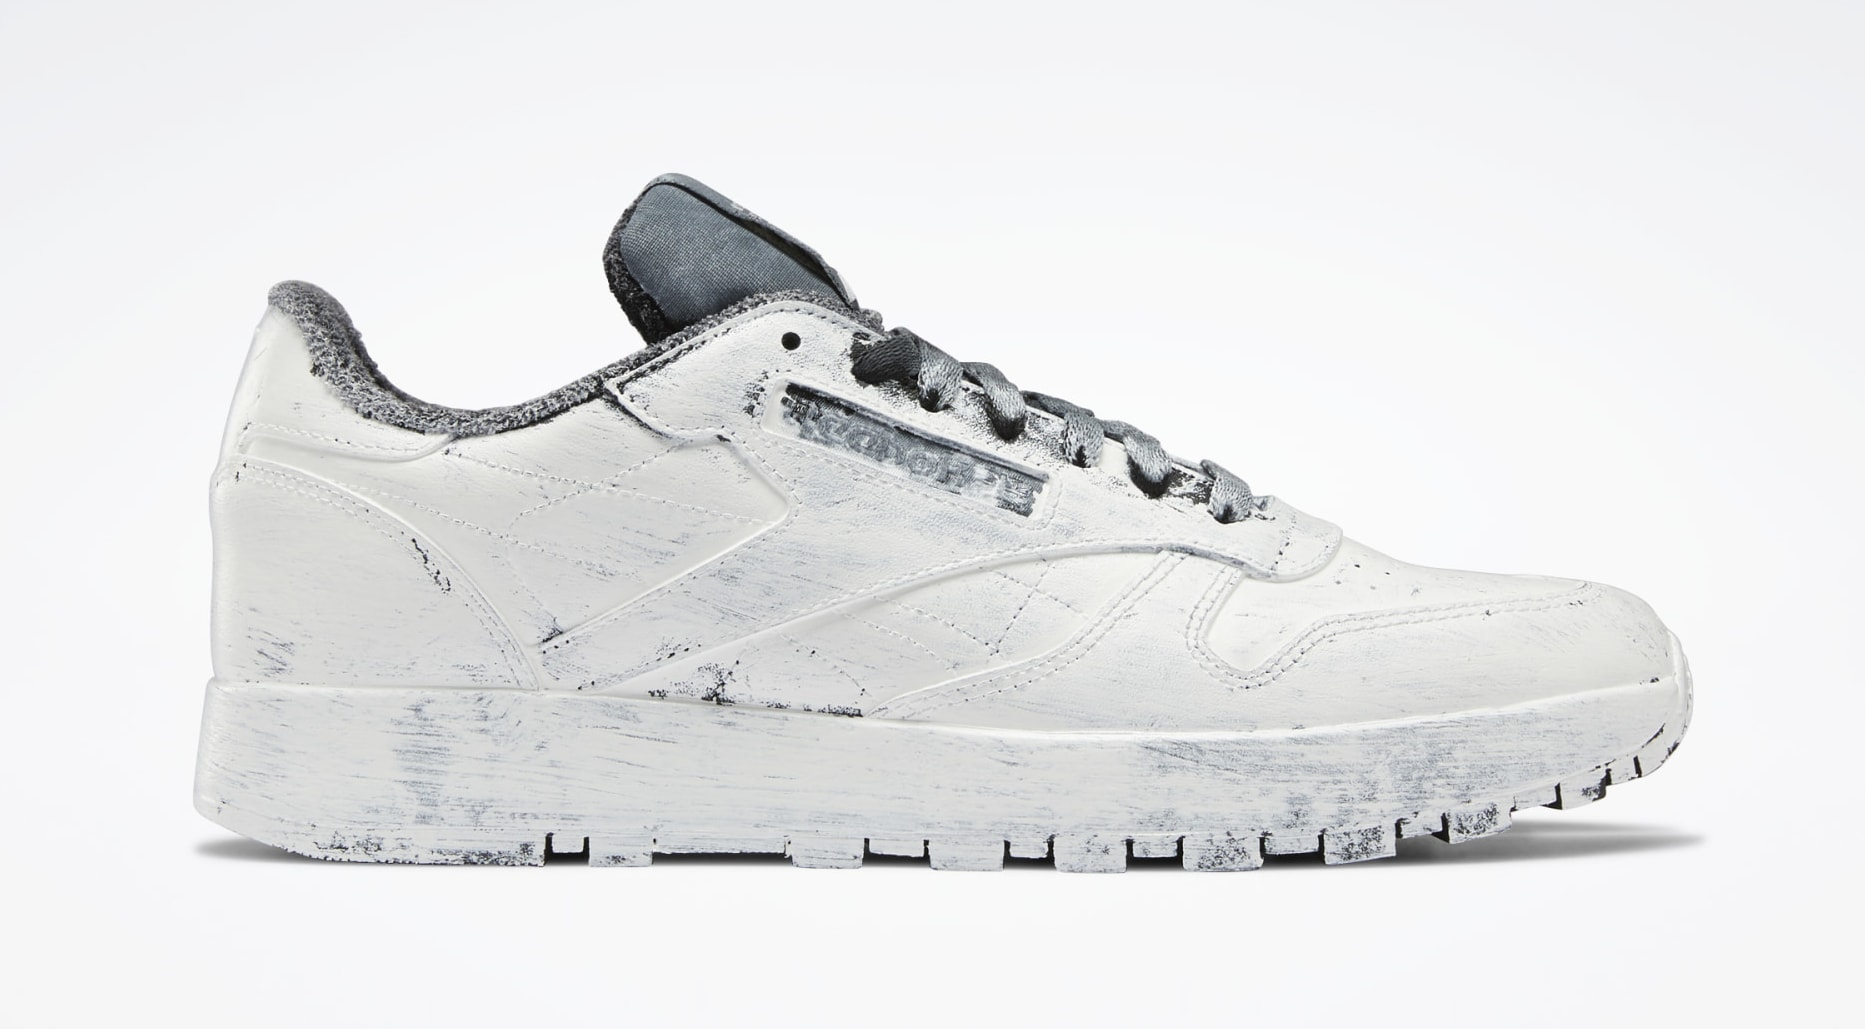 Maison Margiela x Reebok Classic Leather Tabi H04859 Lateral